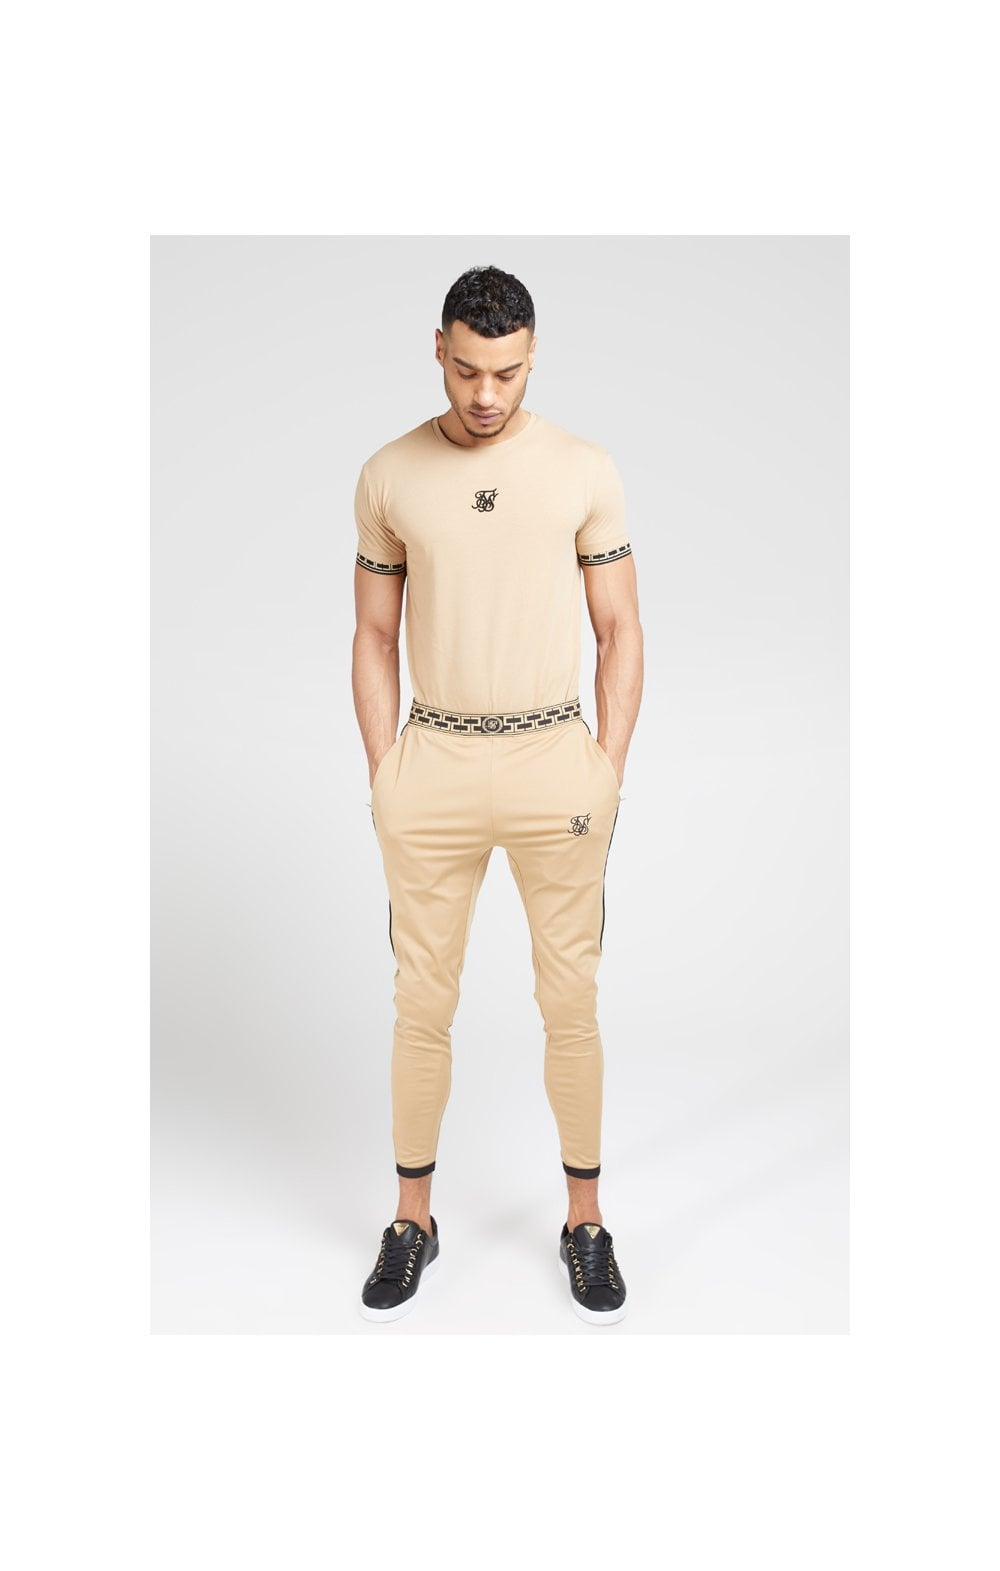 SikSilk S/S Scope Gym Tee – Beige (2)